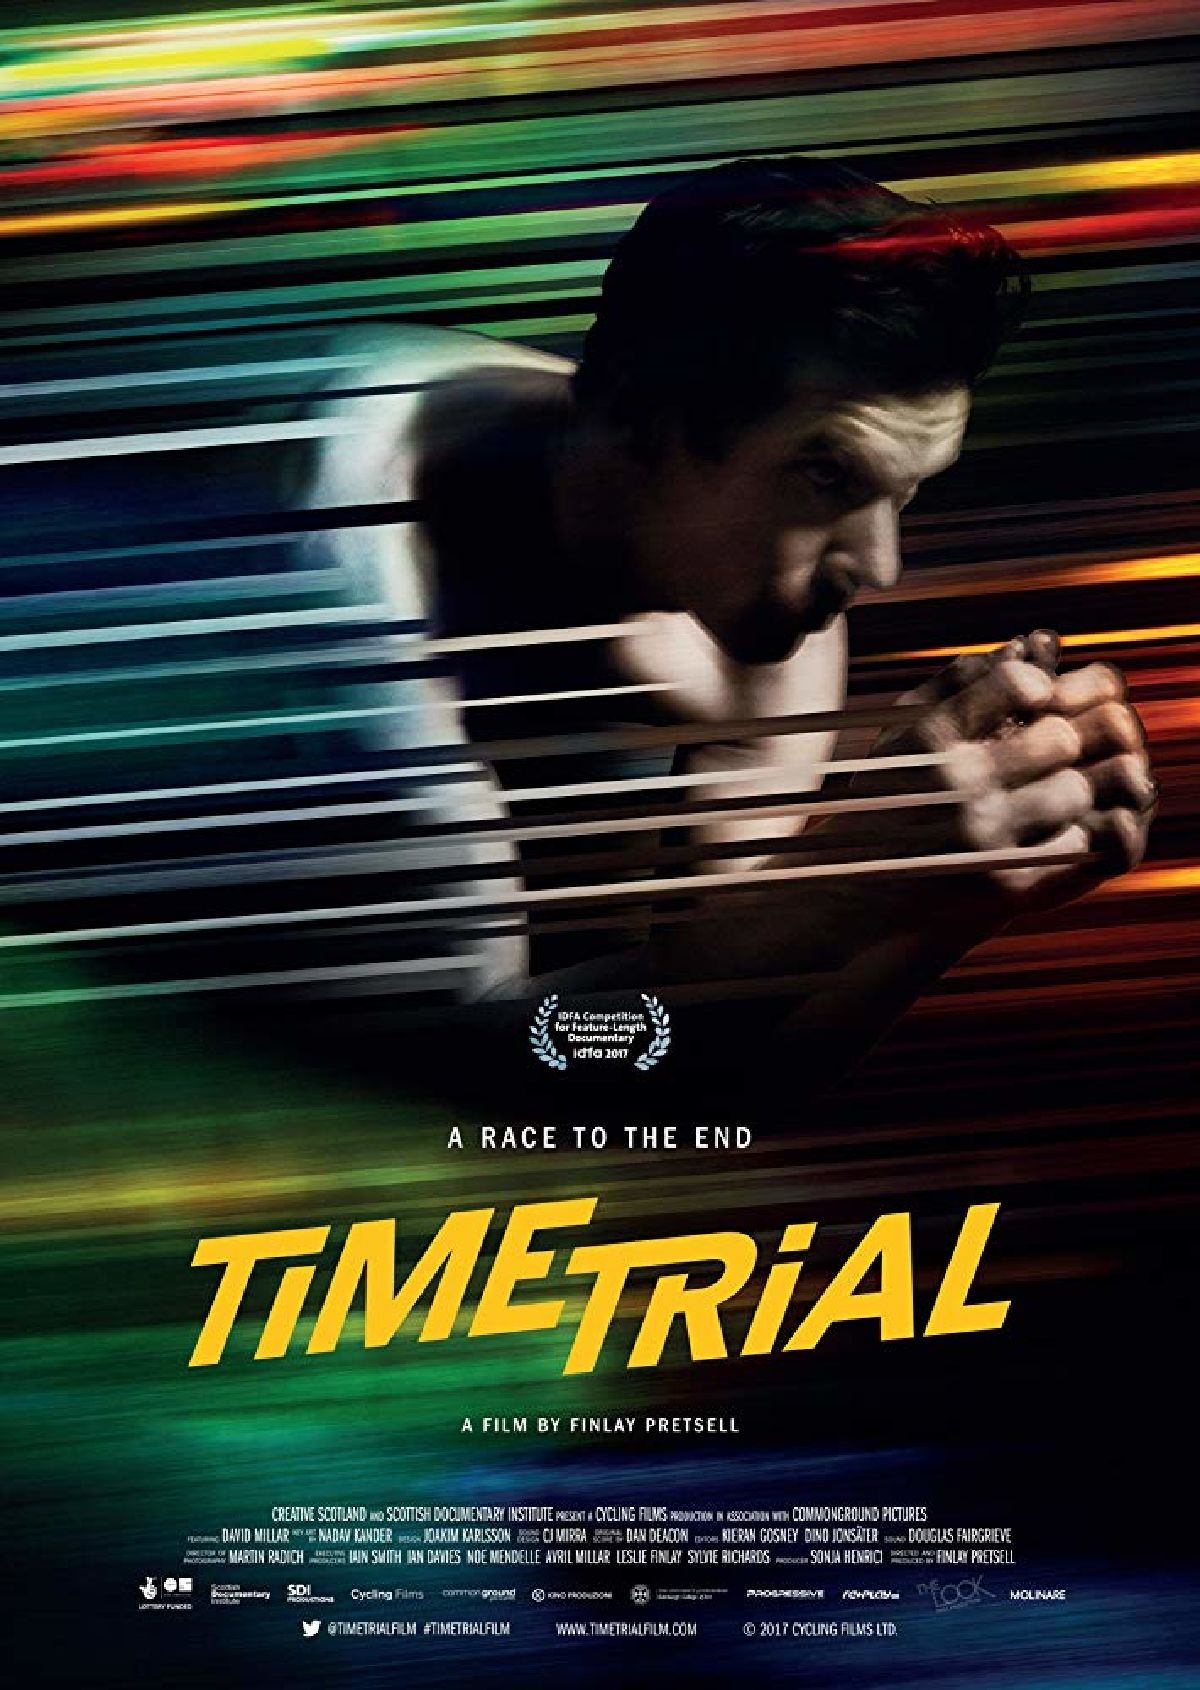 'Time Trial' movie poster